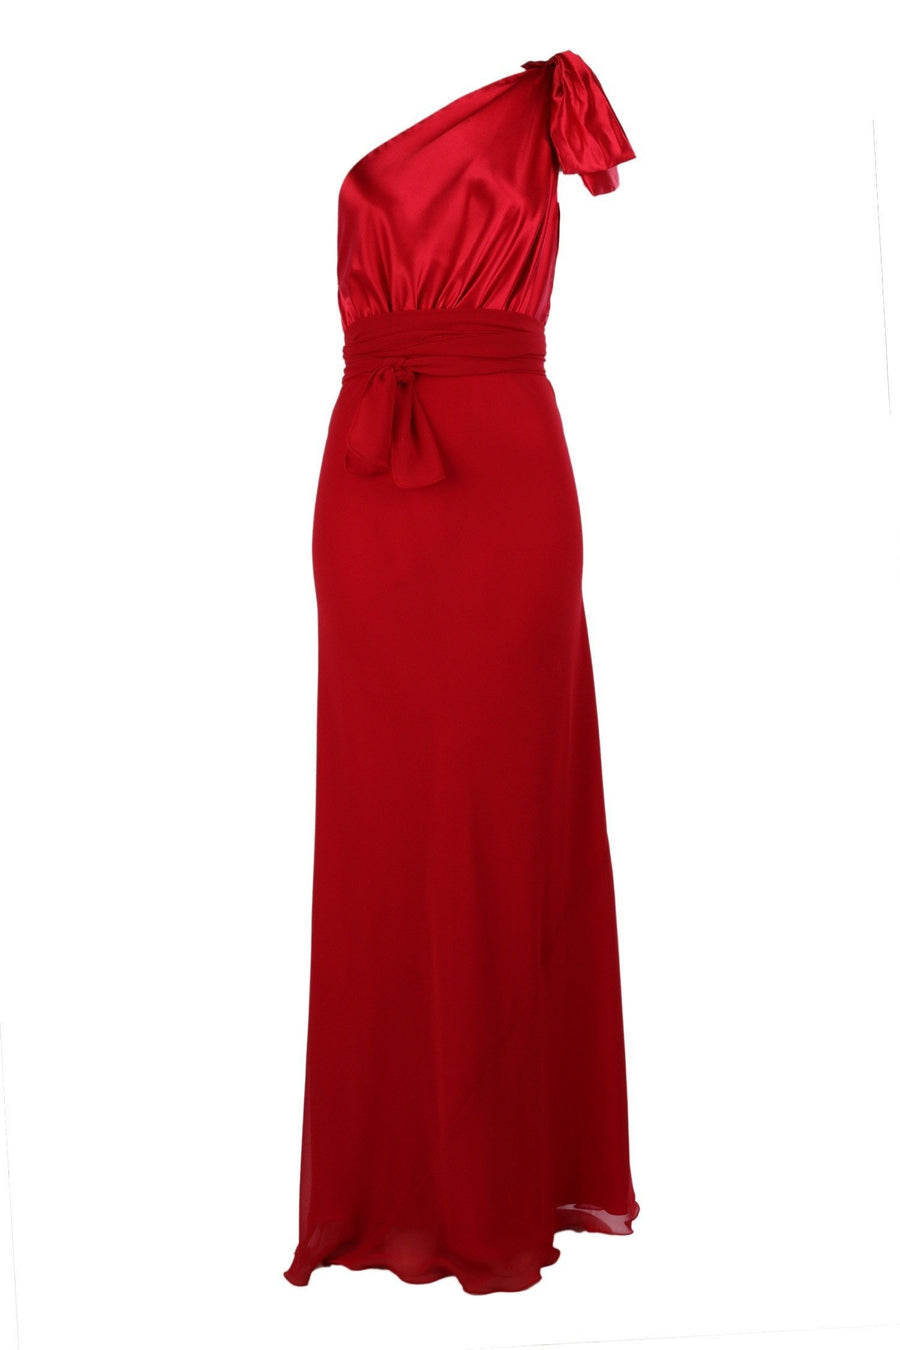 Shop Online 2 Tone Chelsea in Red  | Poly Satin Bodice Skirt in Poly Georgette by Lucy Laurita - Leiela  Frockaholics Dresses